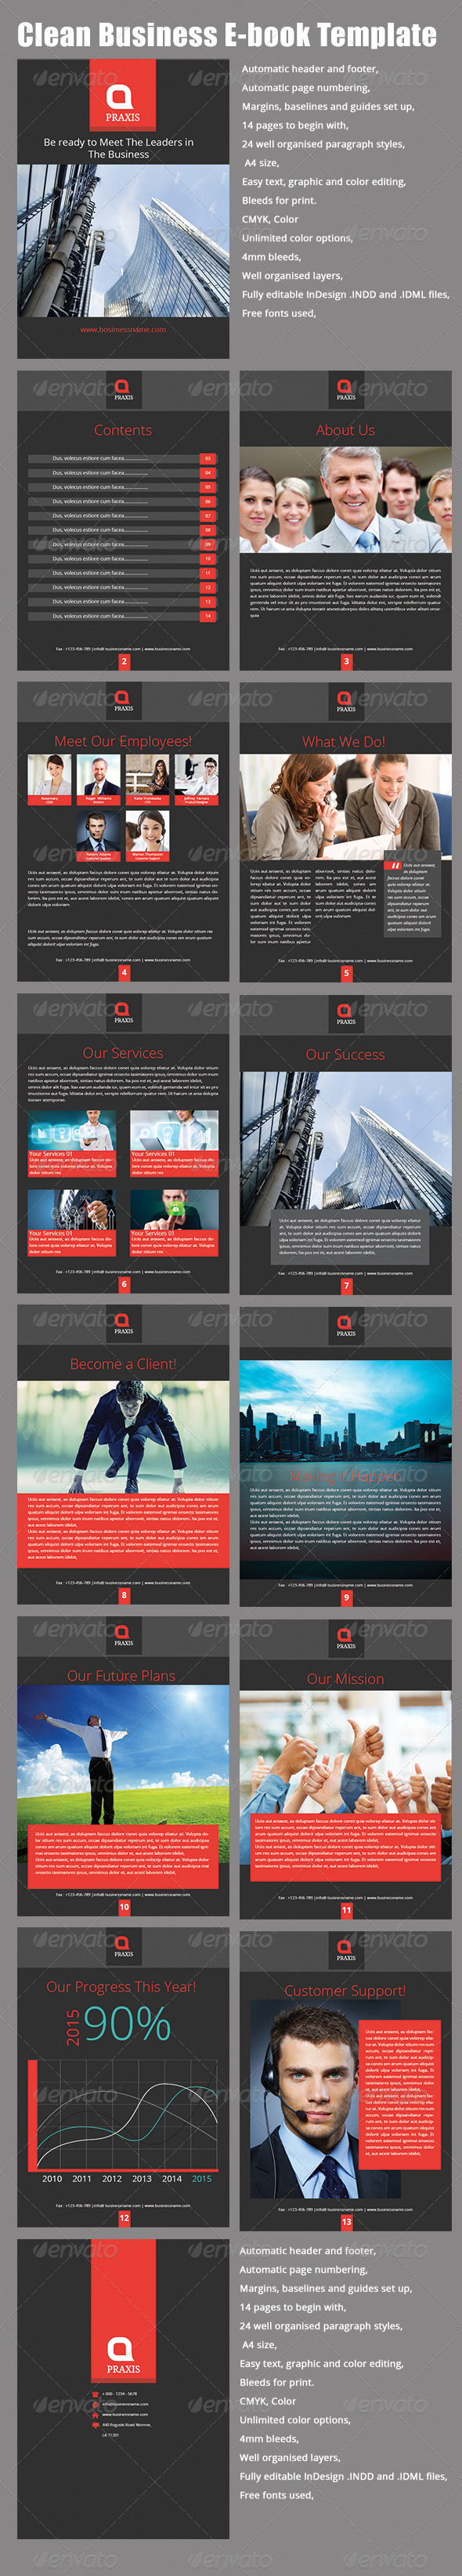 Clean Business E-book Template